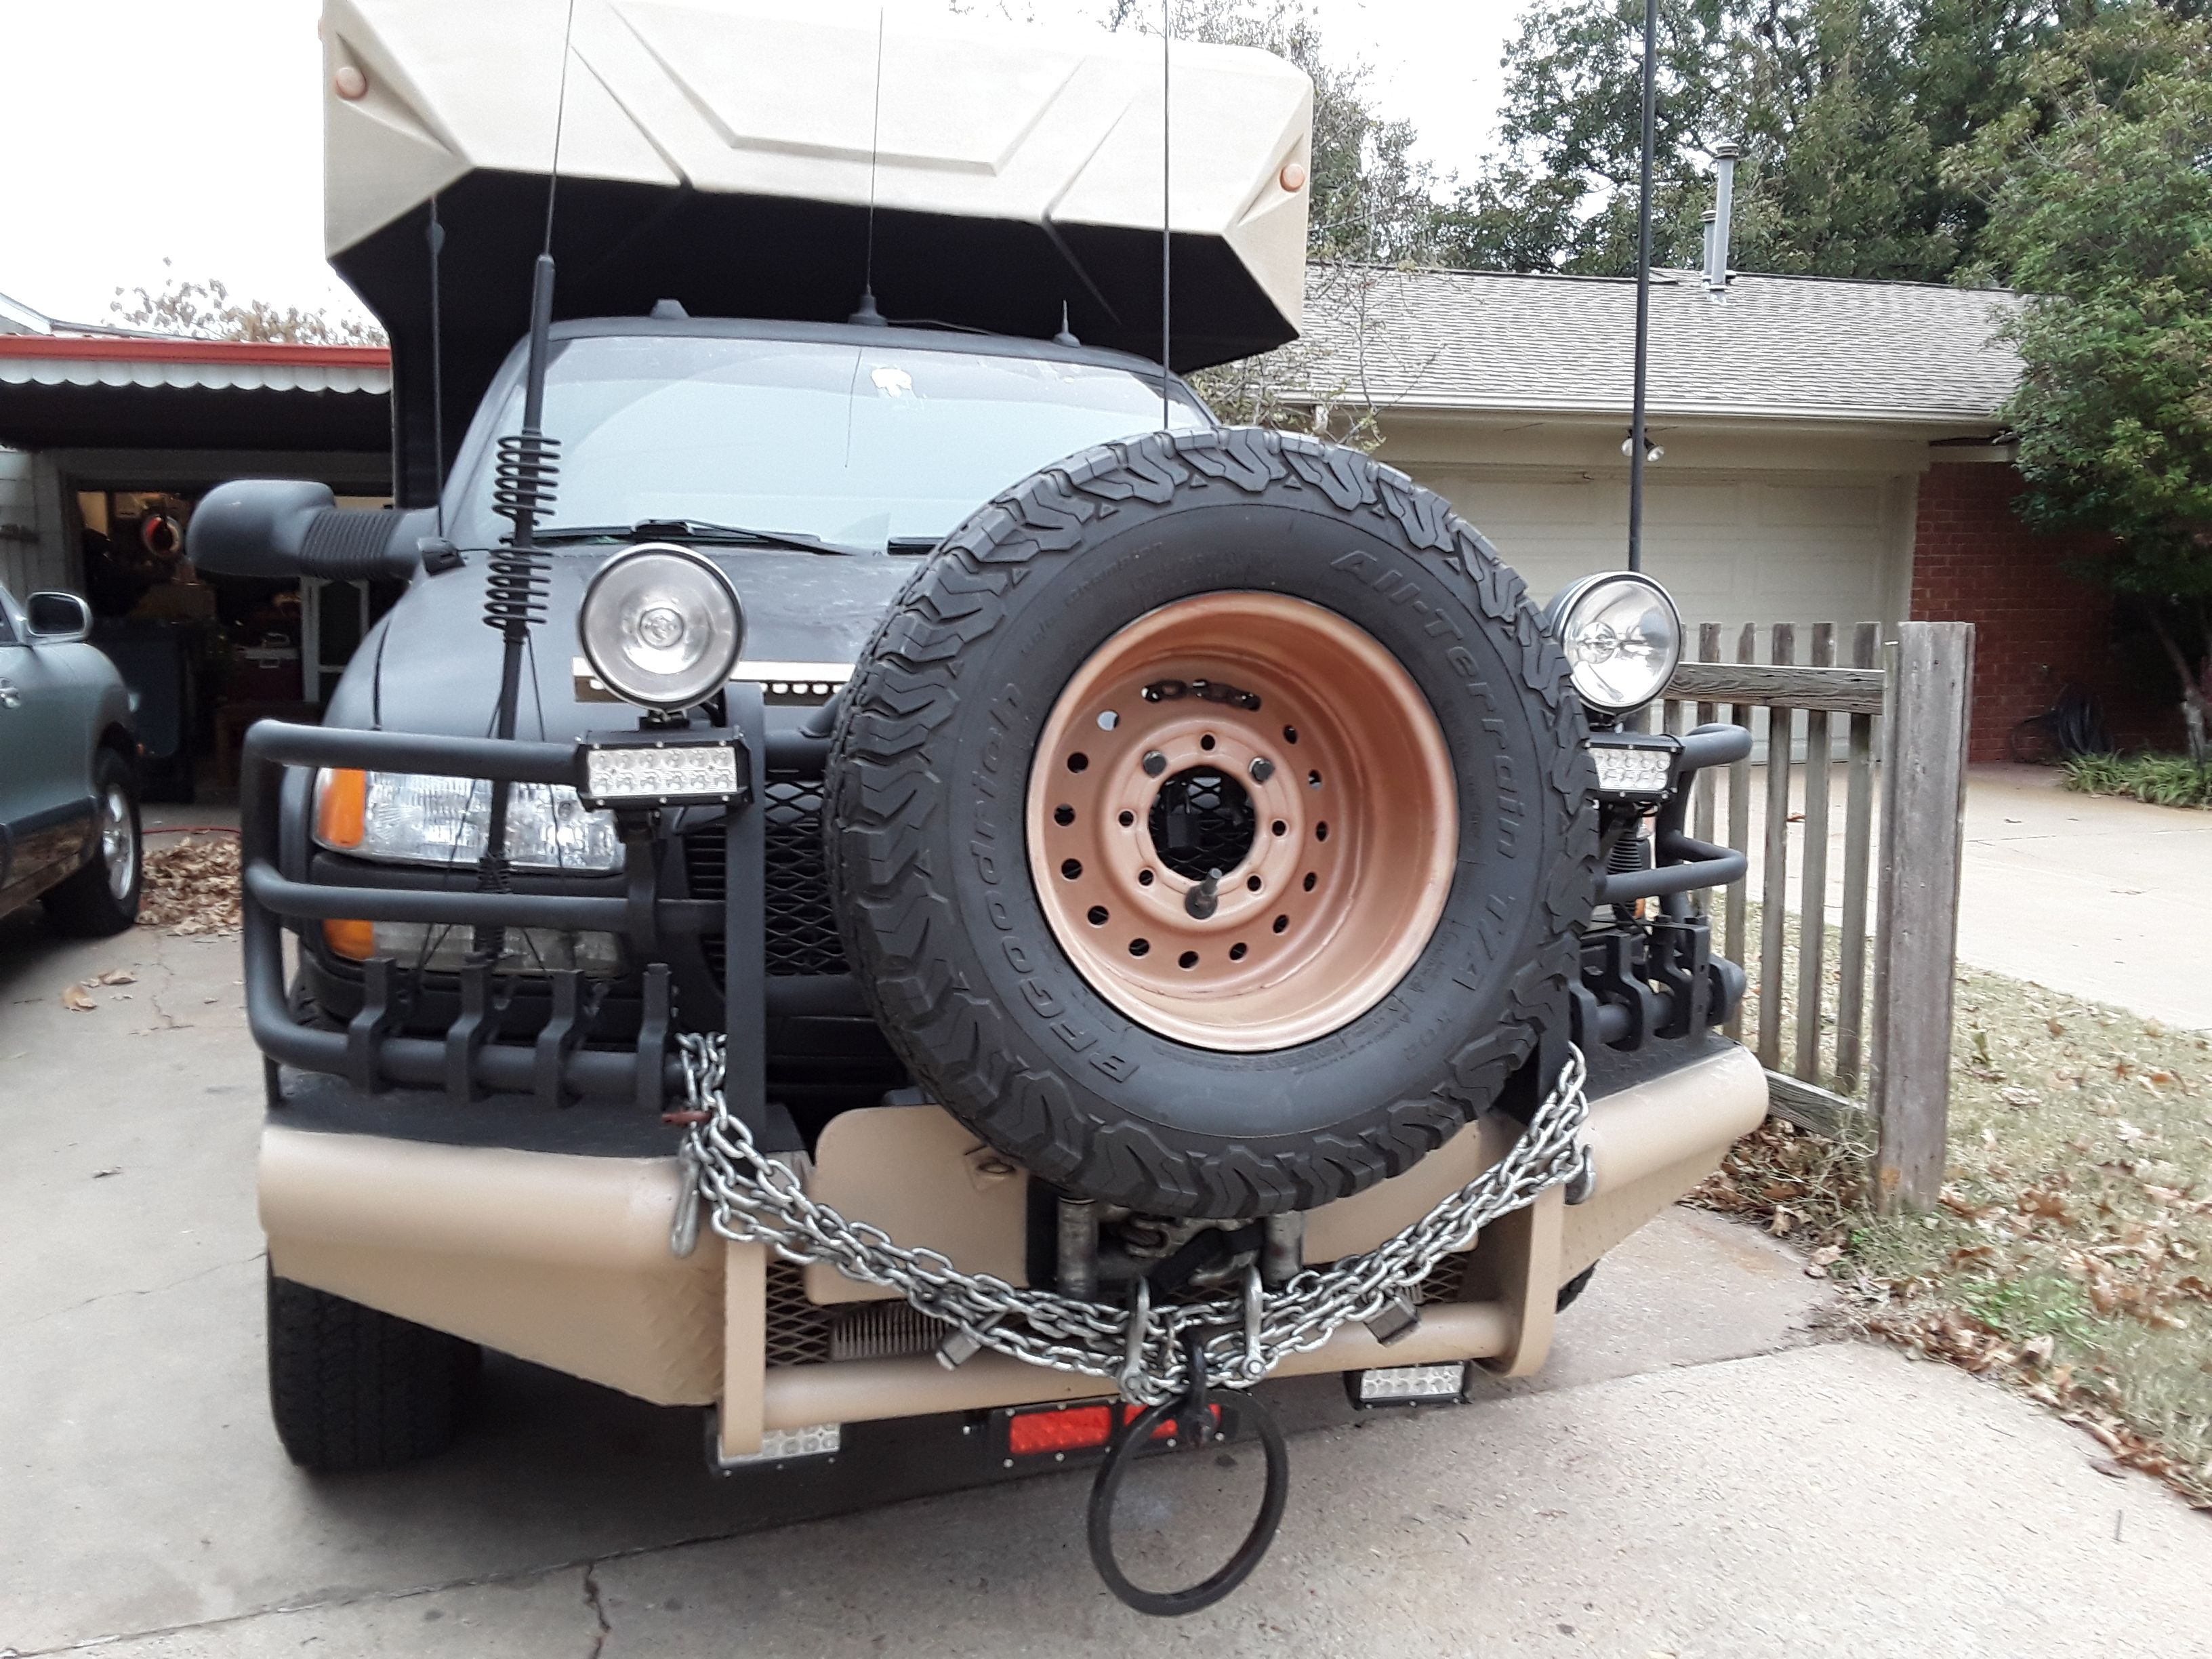 Diy expeditionbug out truck inspired by earthromer